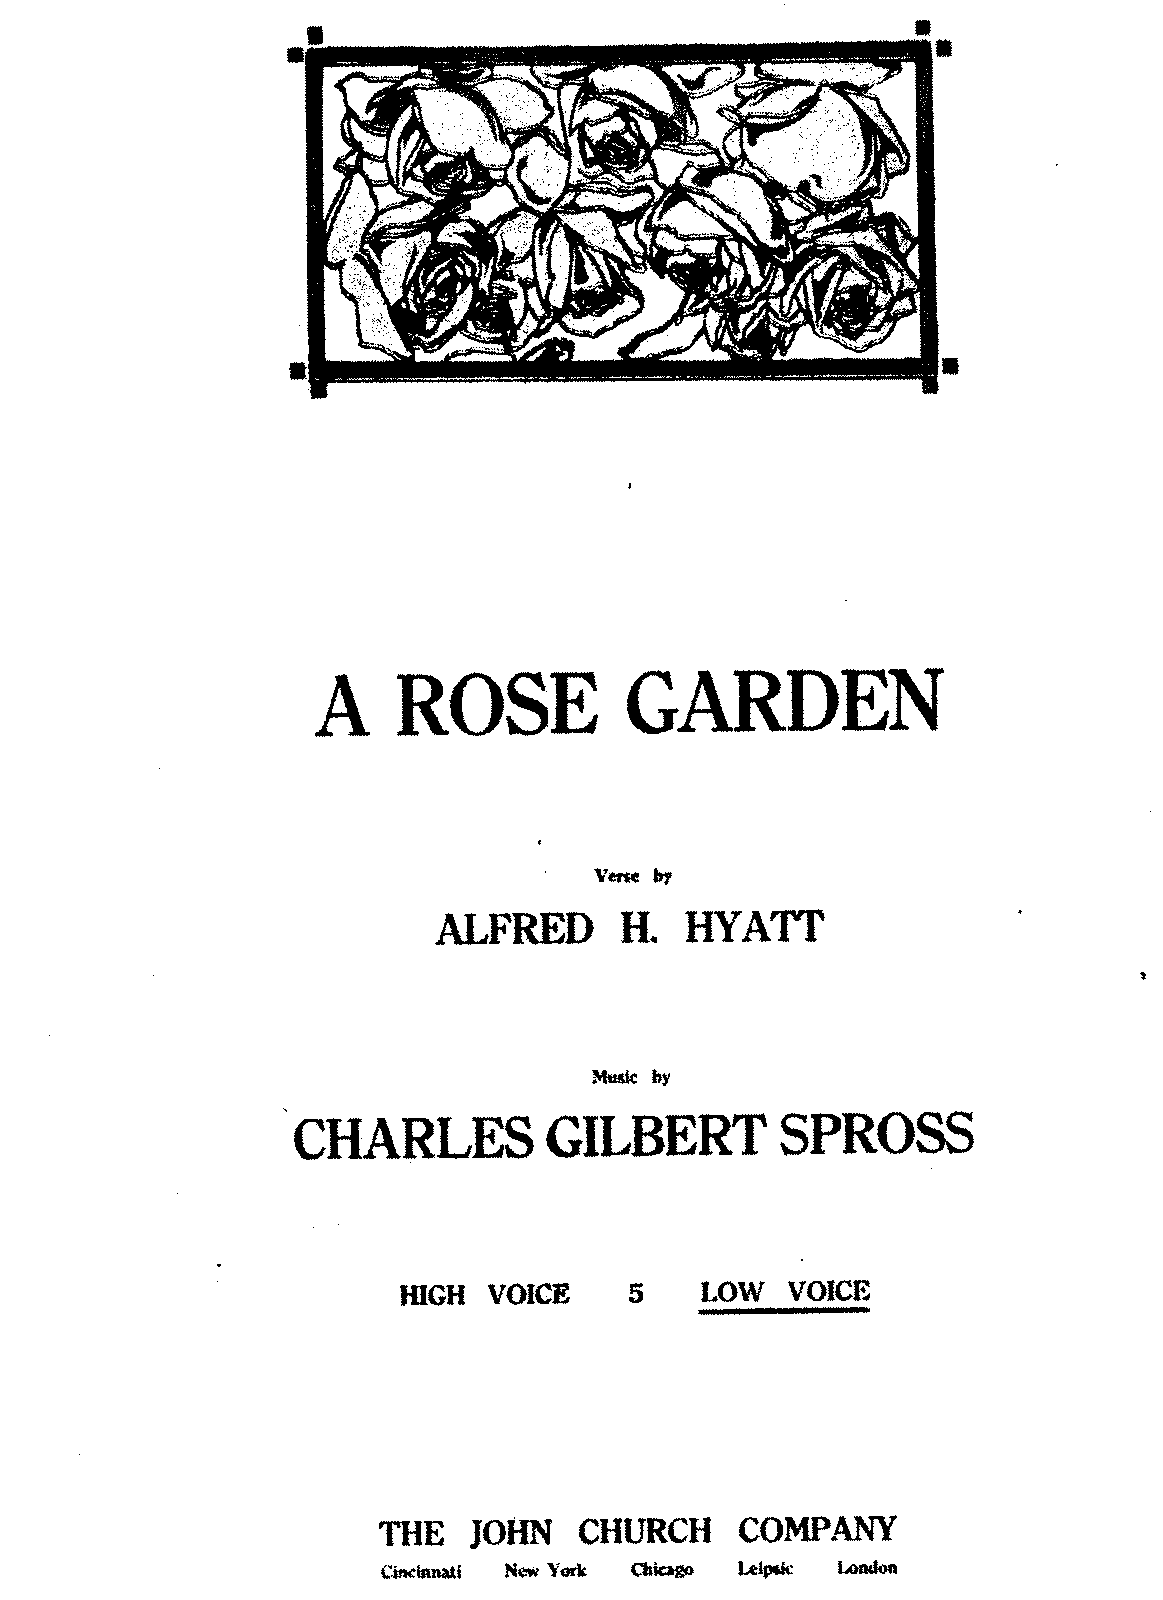 PMLP230381-Spross A Rose Garden cropped.pdf